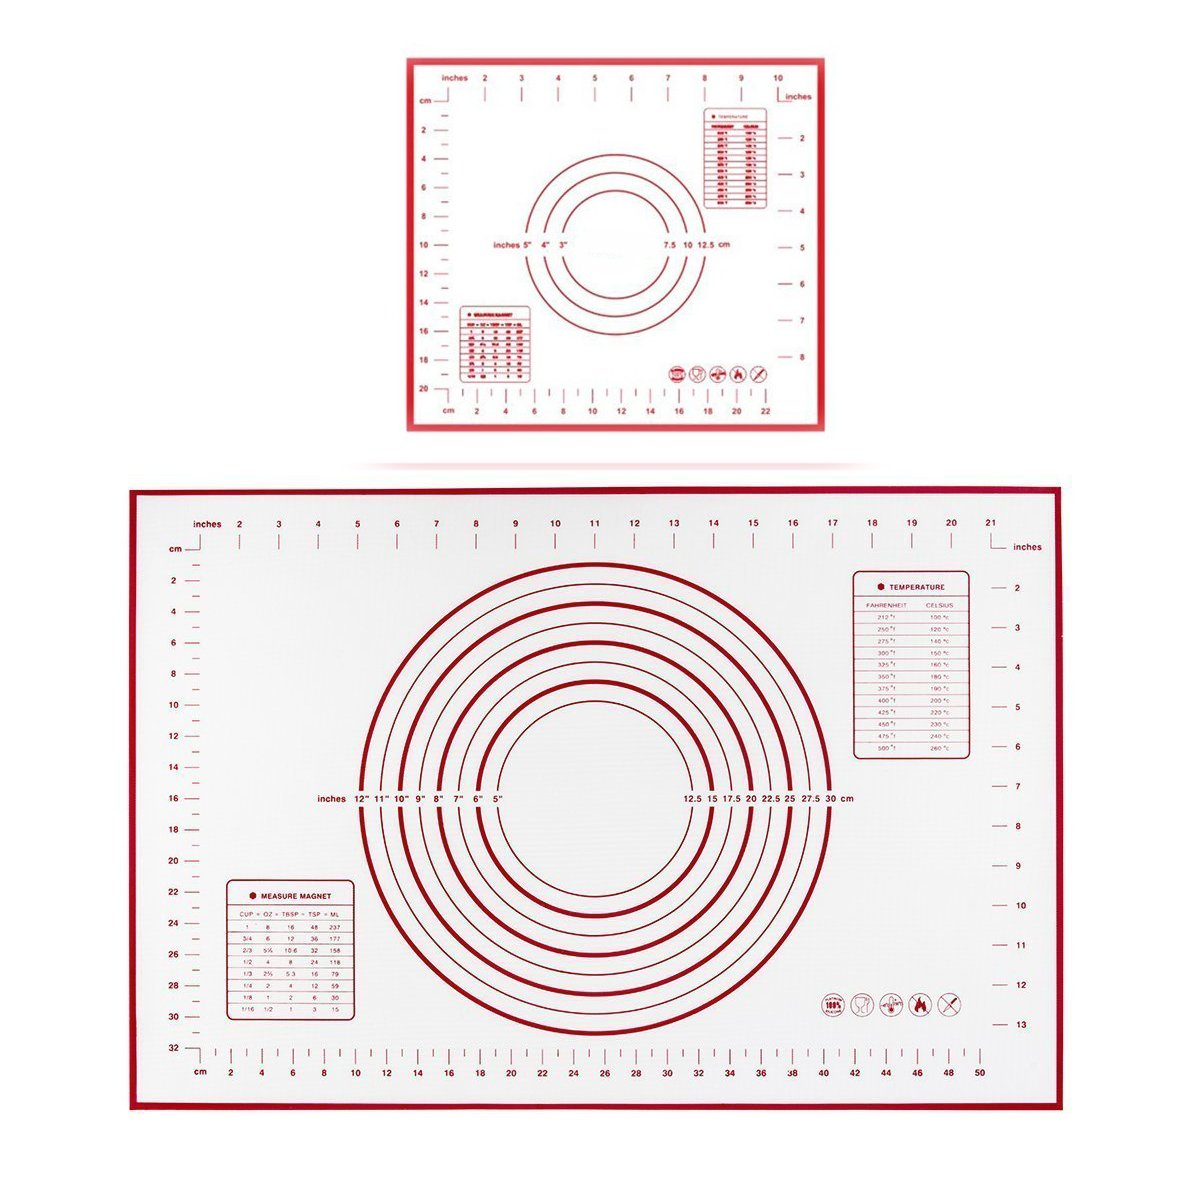 Polkar Silicone Pastry Mat With Measurements,FDA Approved and BPA Free,Non-slip Sheet Sticks to Countertop for Rolling Dough (Red-Large(23.6''X15.7'') Small(11.4''X10.2''))